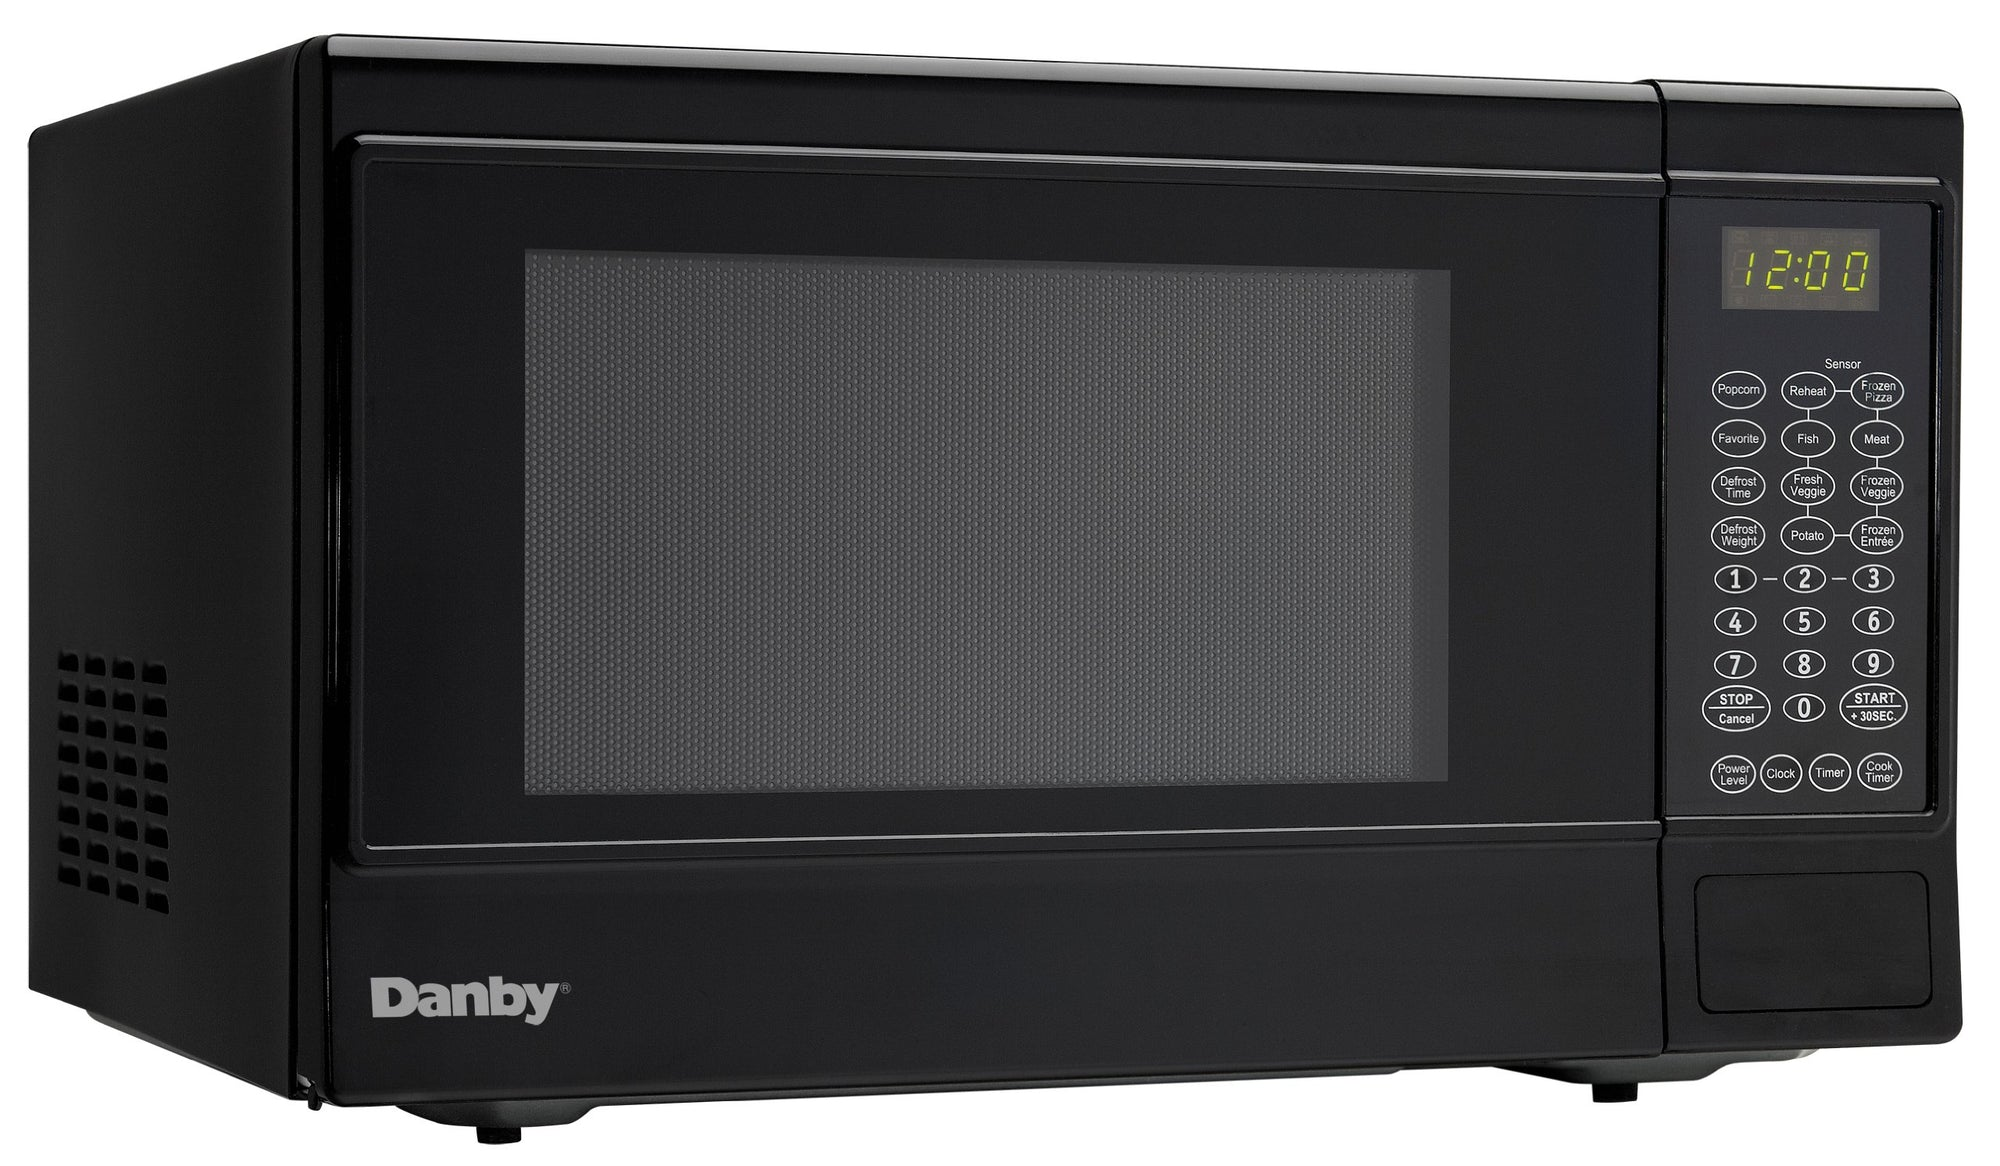 Danby 1.4 cu.ft. Countertop Microwave, Black